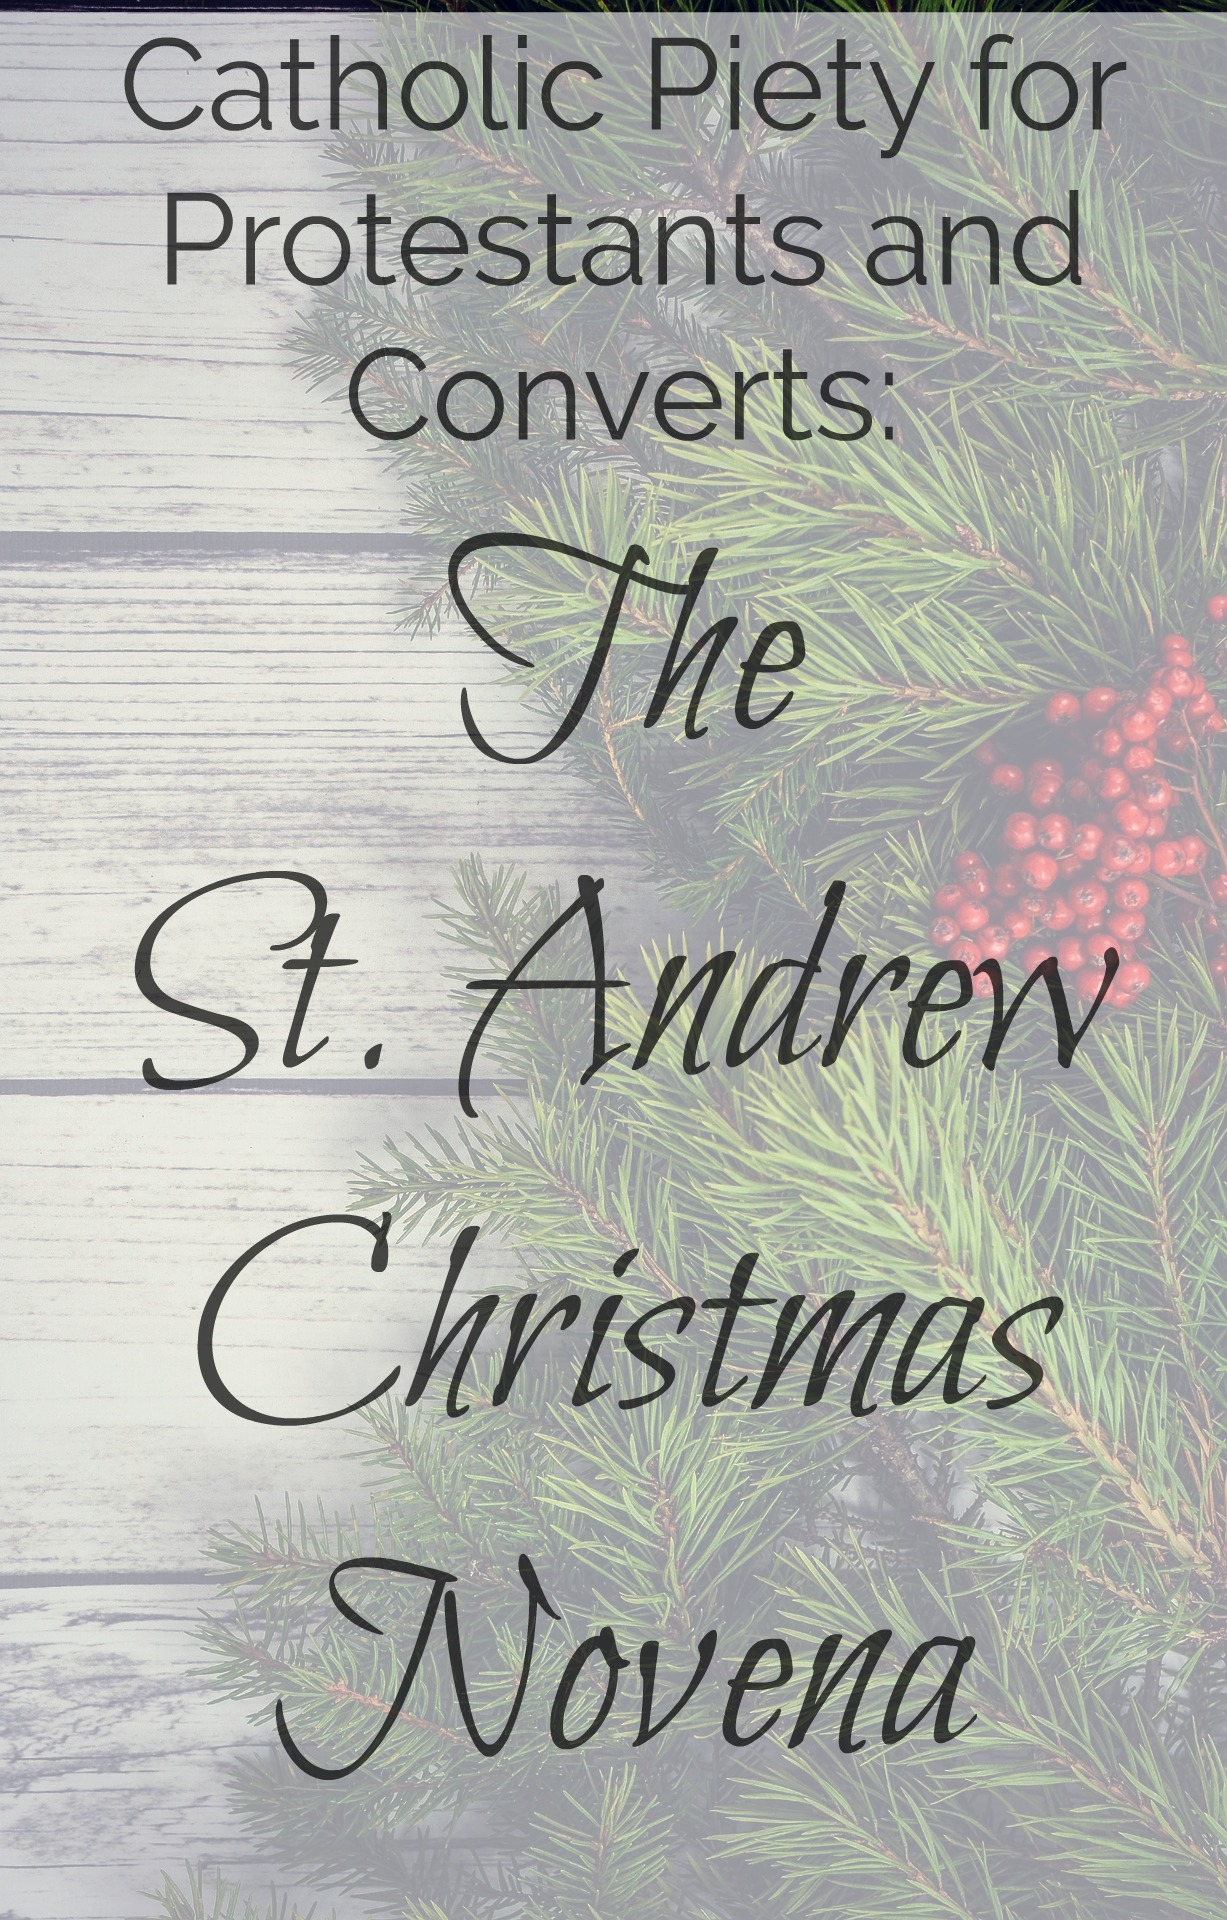 St. Andrew Christmas Novena | Green Catholic Burrow